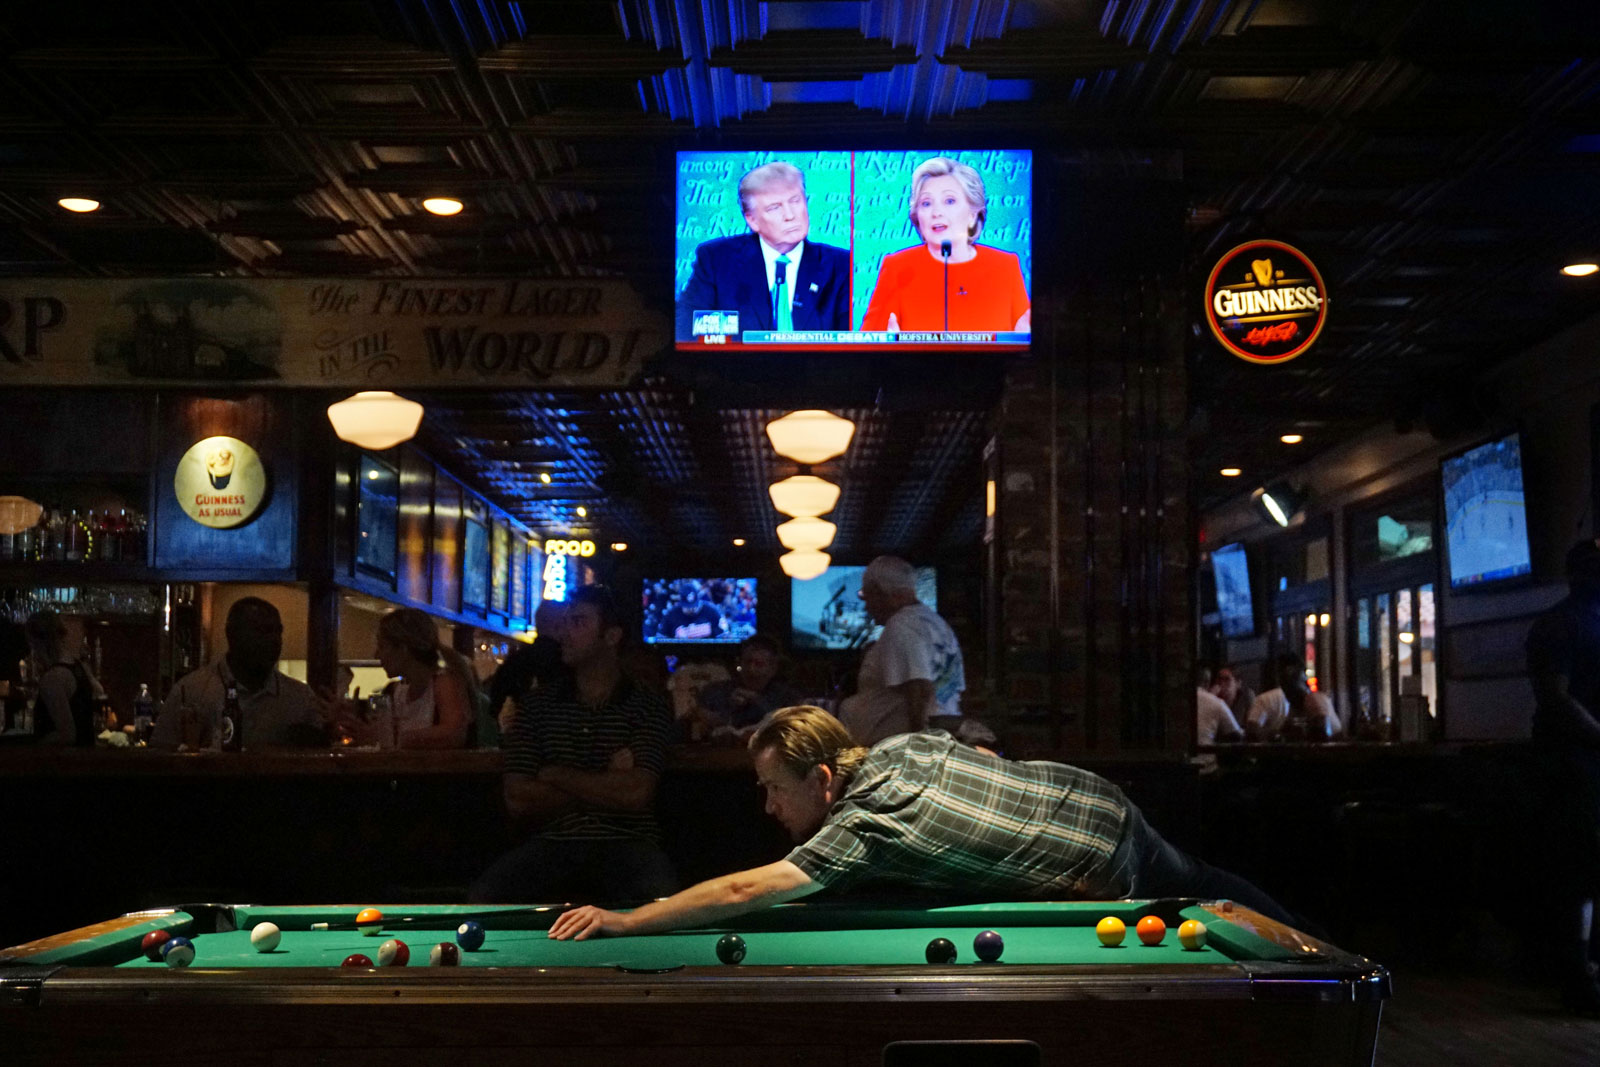 Patrons at McGregor's Bar and Grill during the first presidential debate, San Diego, California, September 26, 2016